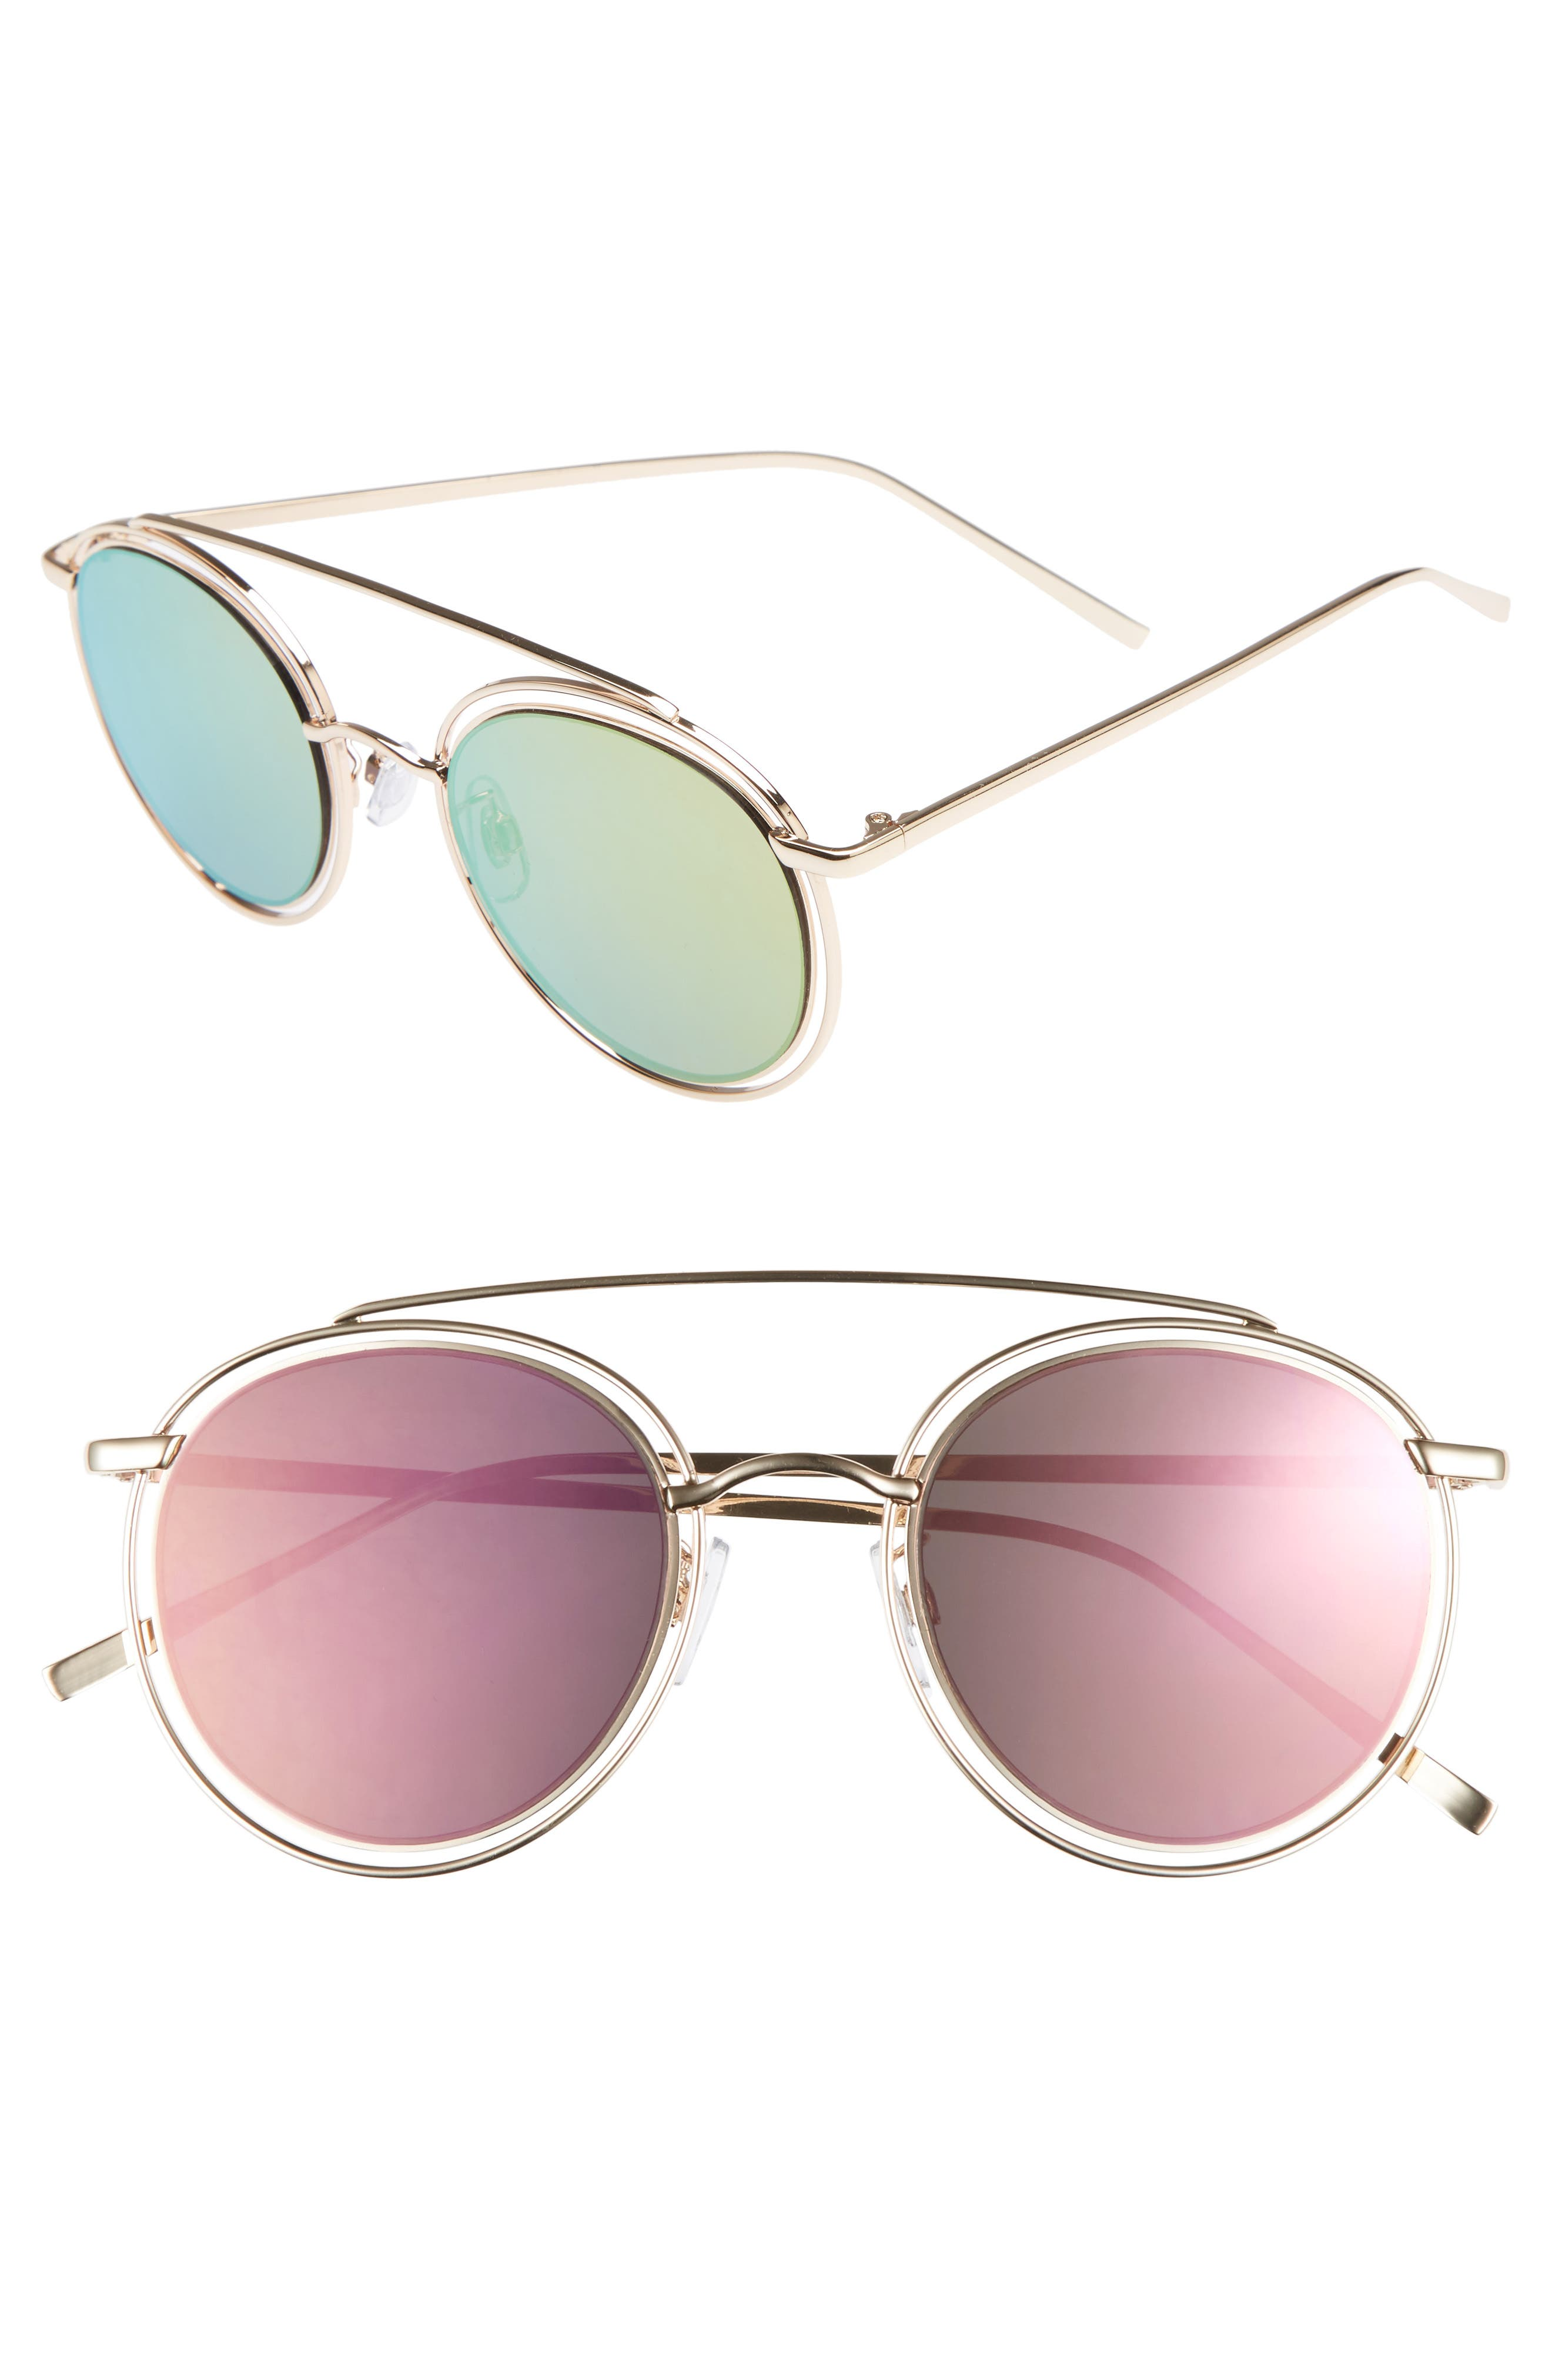 50mm Browbar Sunglasses,                             Main thumbnail 1, color,                             GOLD/ PINK